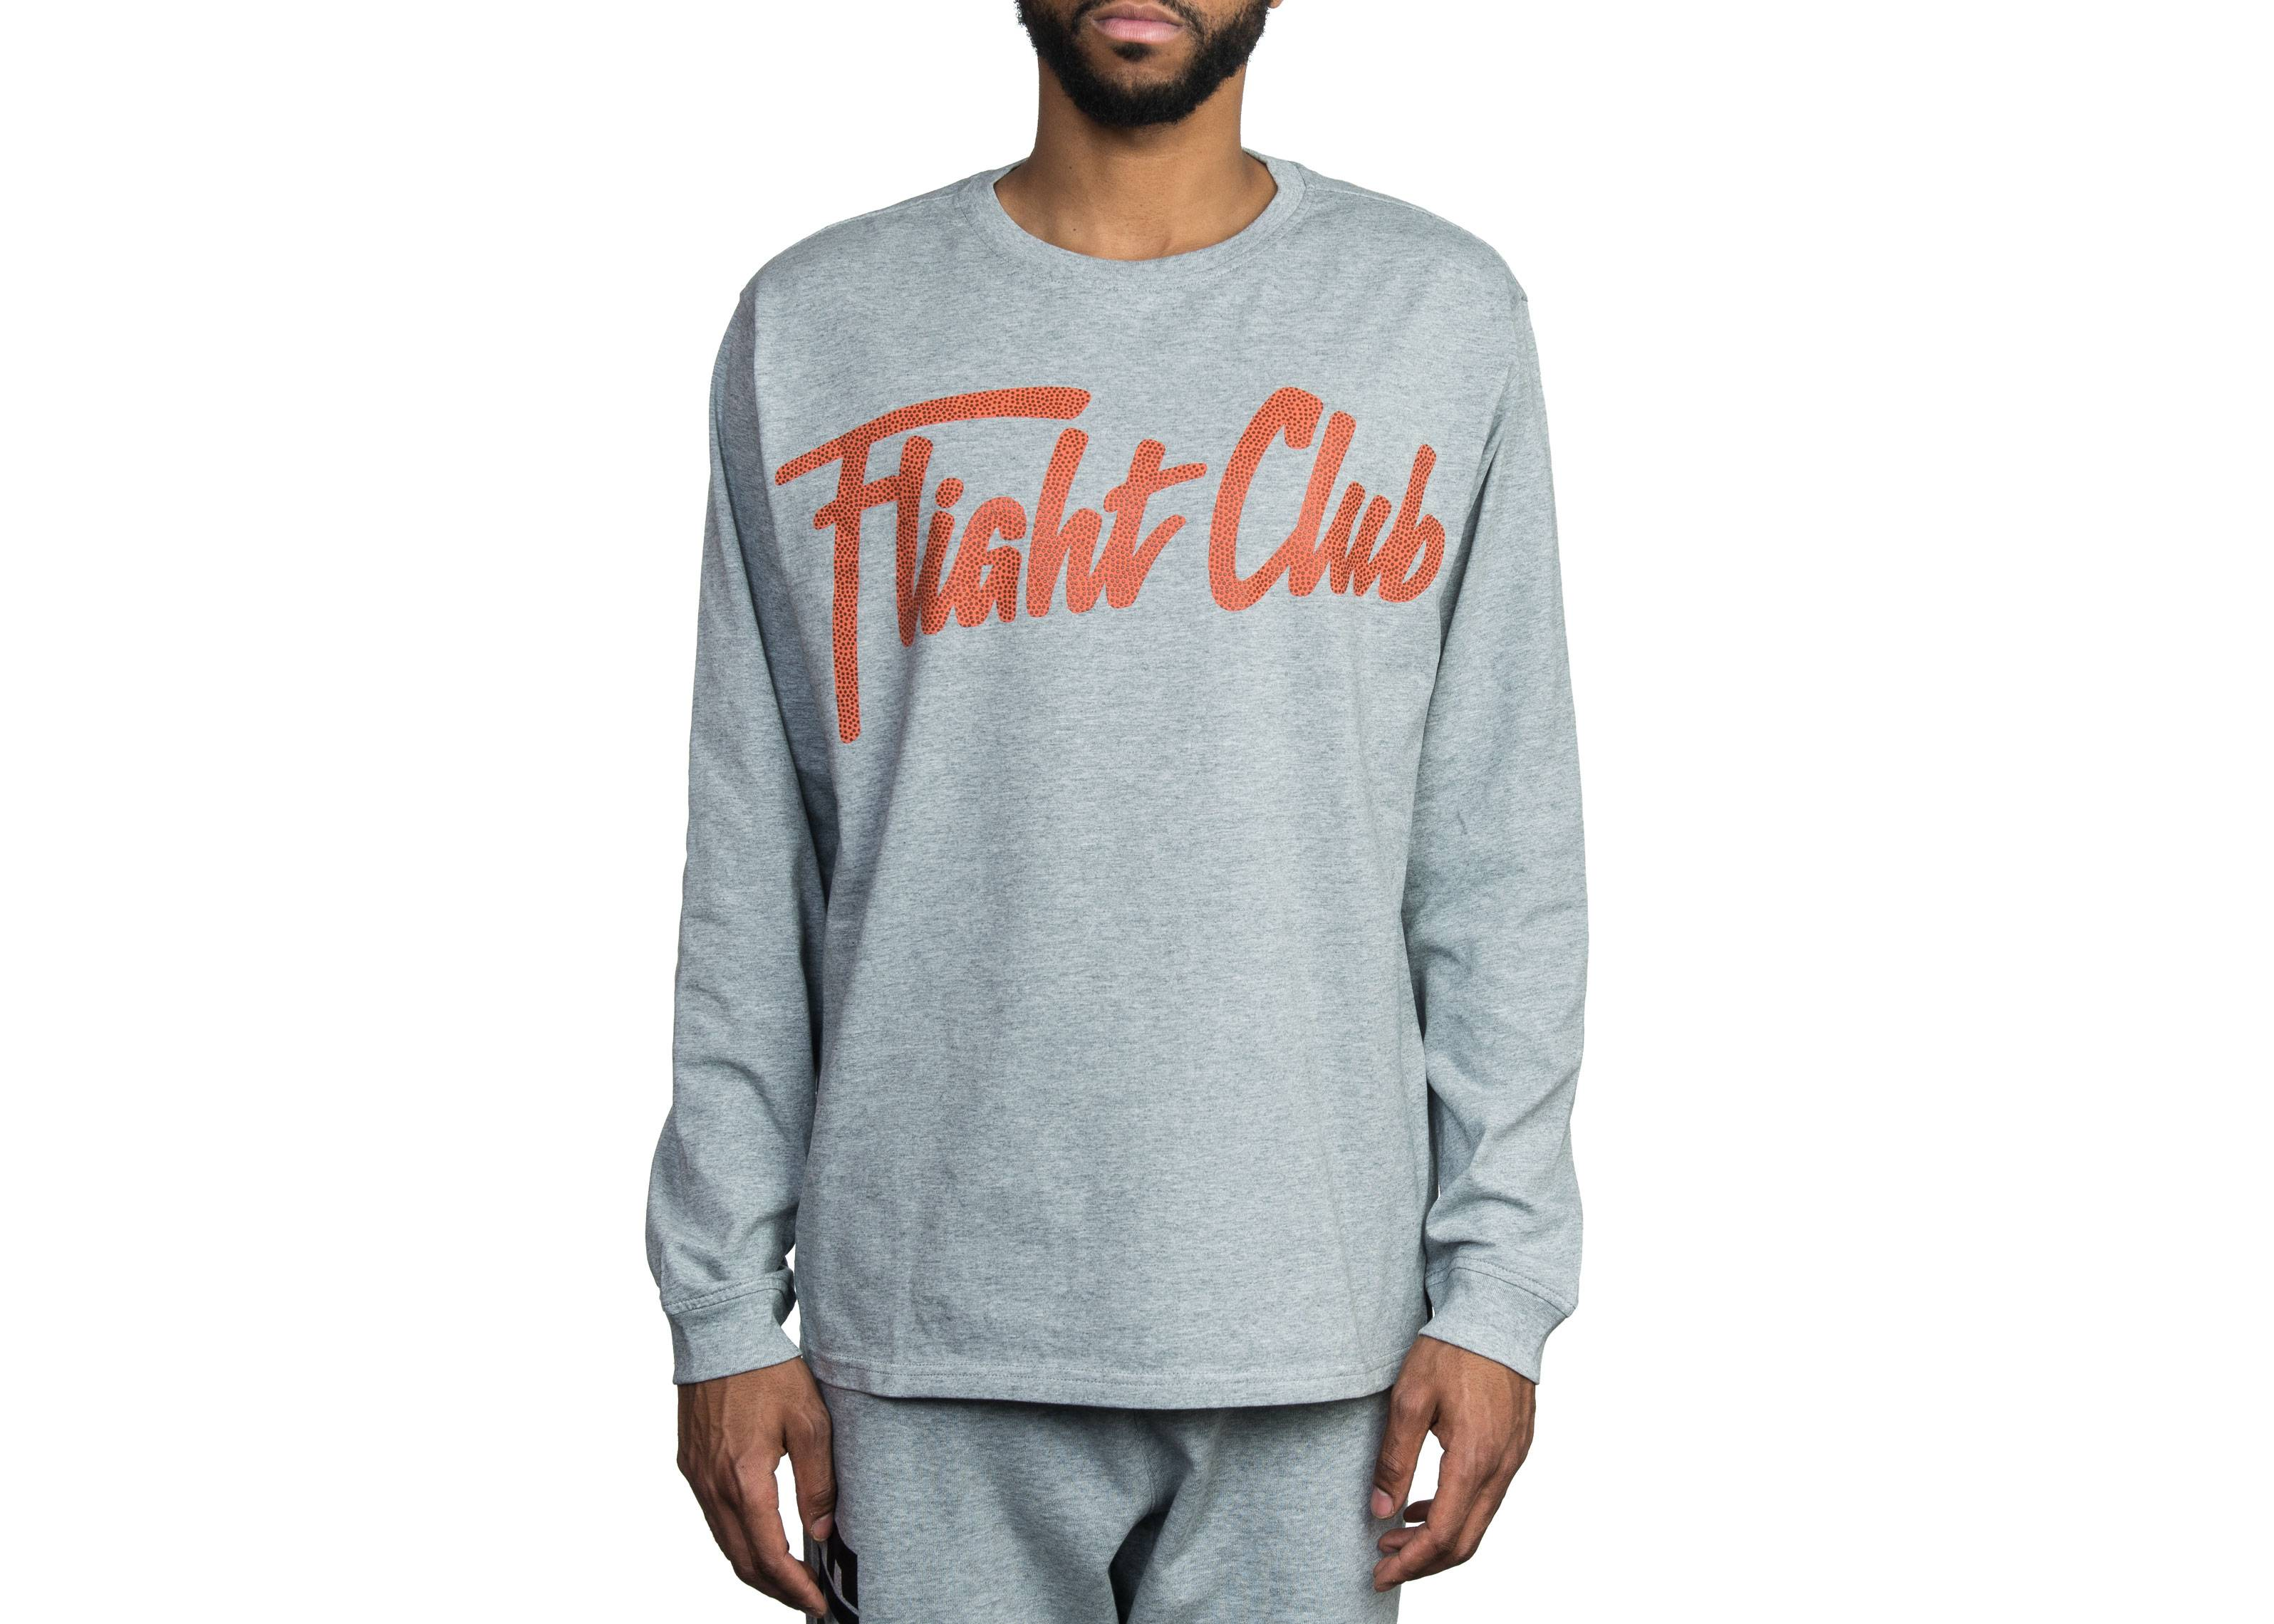 8fe002f3a115 Script LS T-Shirt - Flight Club - FCT24 17 1 - heather orange ...